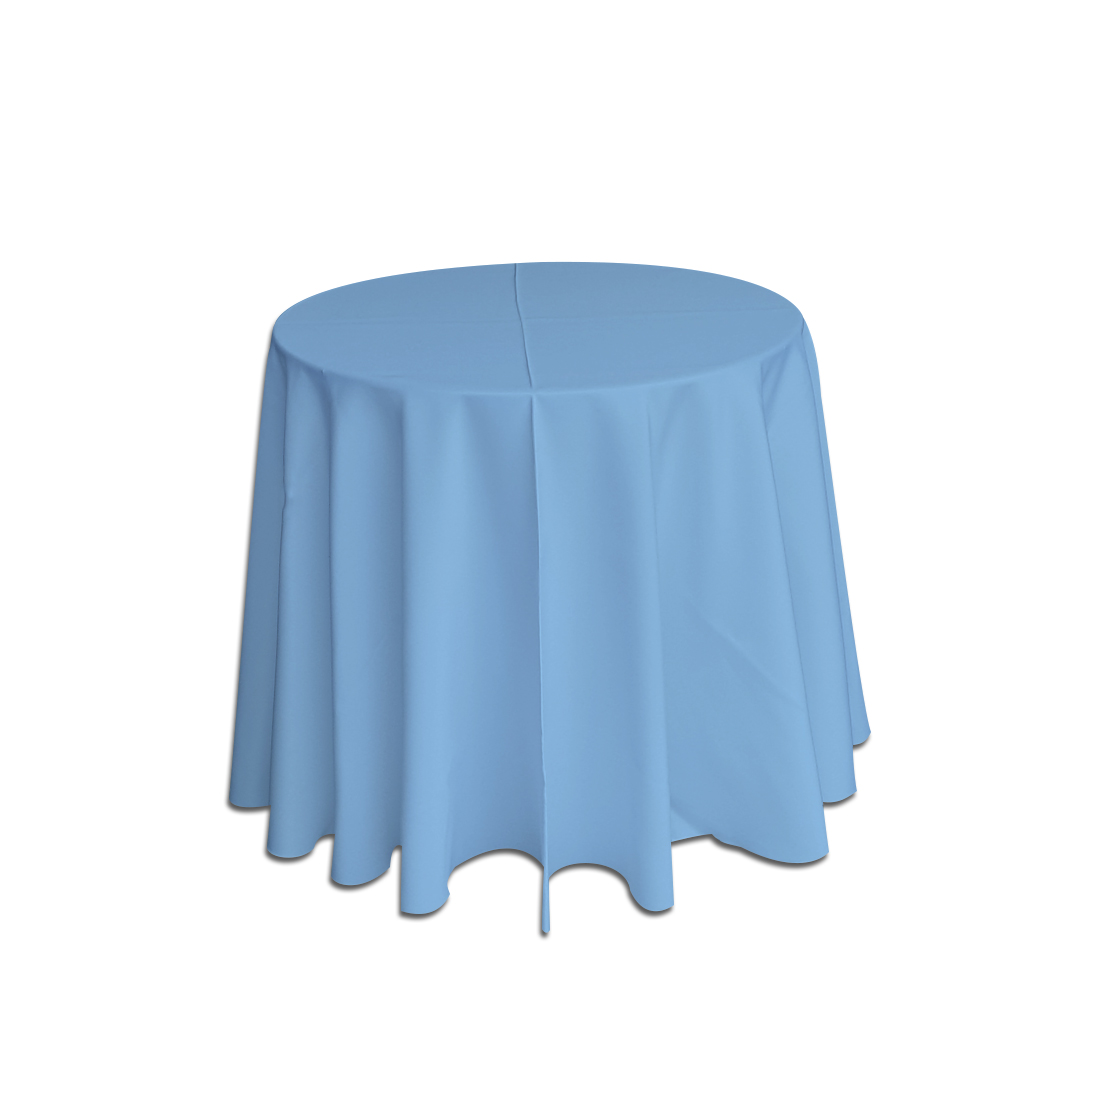 Linens/90Round/linTablecloth90_30Round_LightBluePoly_w